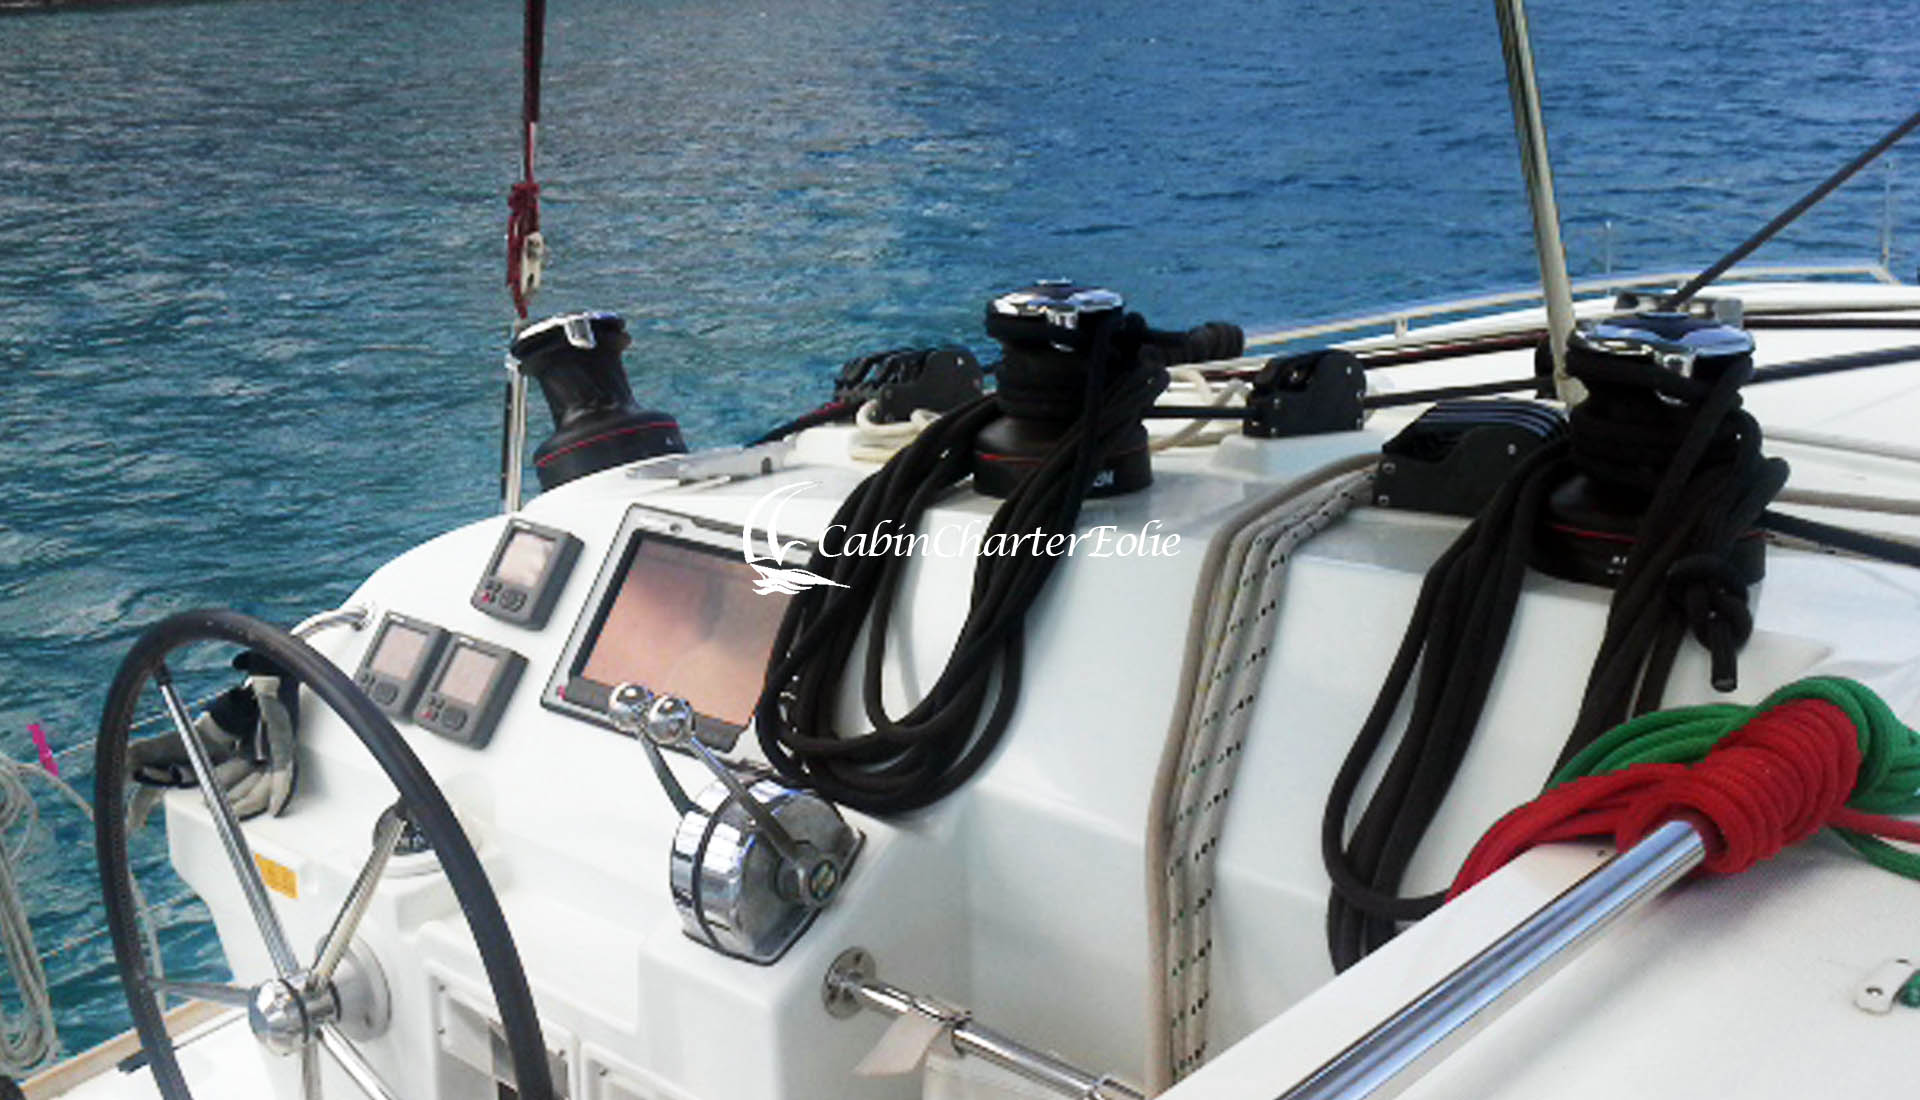 Imbarco Individuale - Team Building - Cabin Charter Eolie